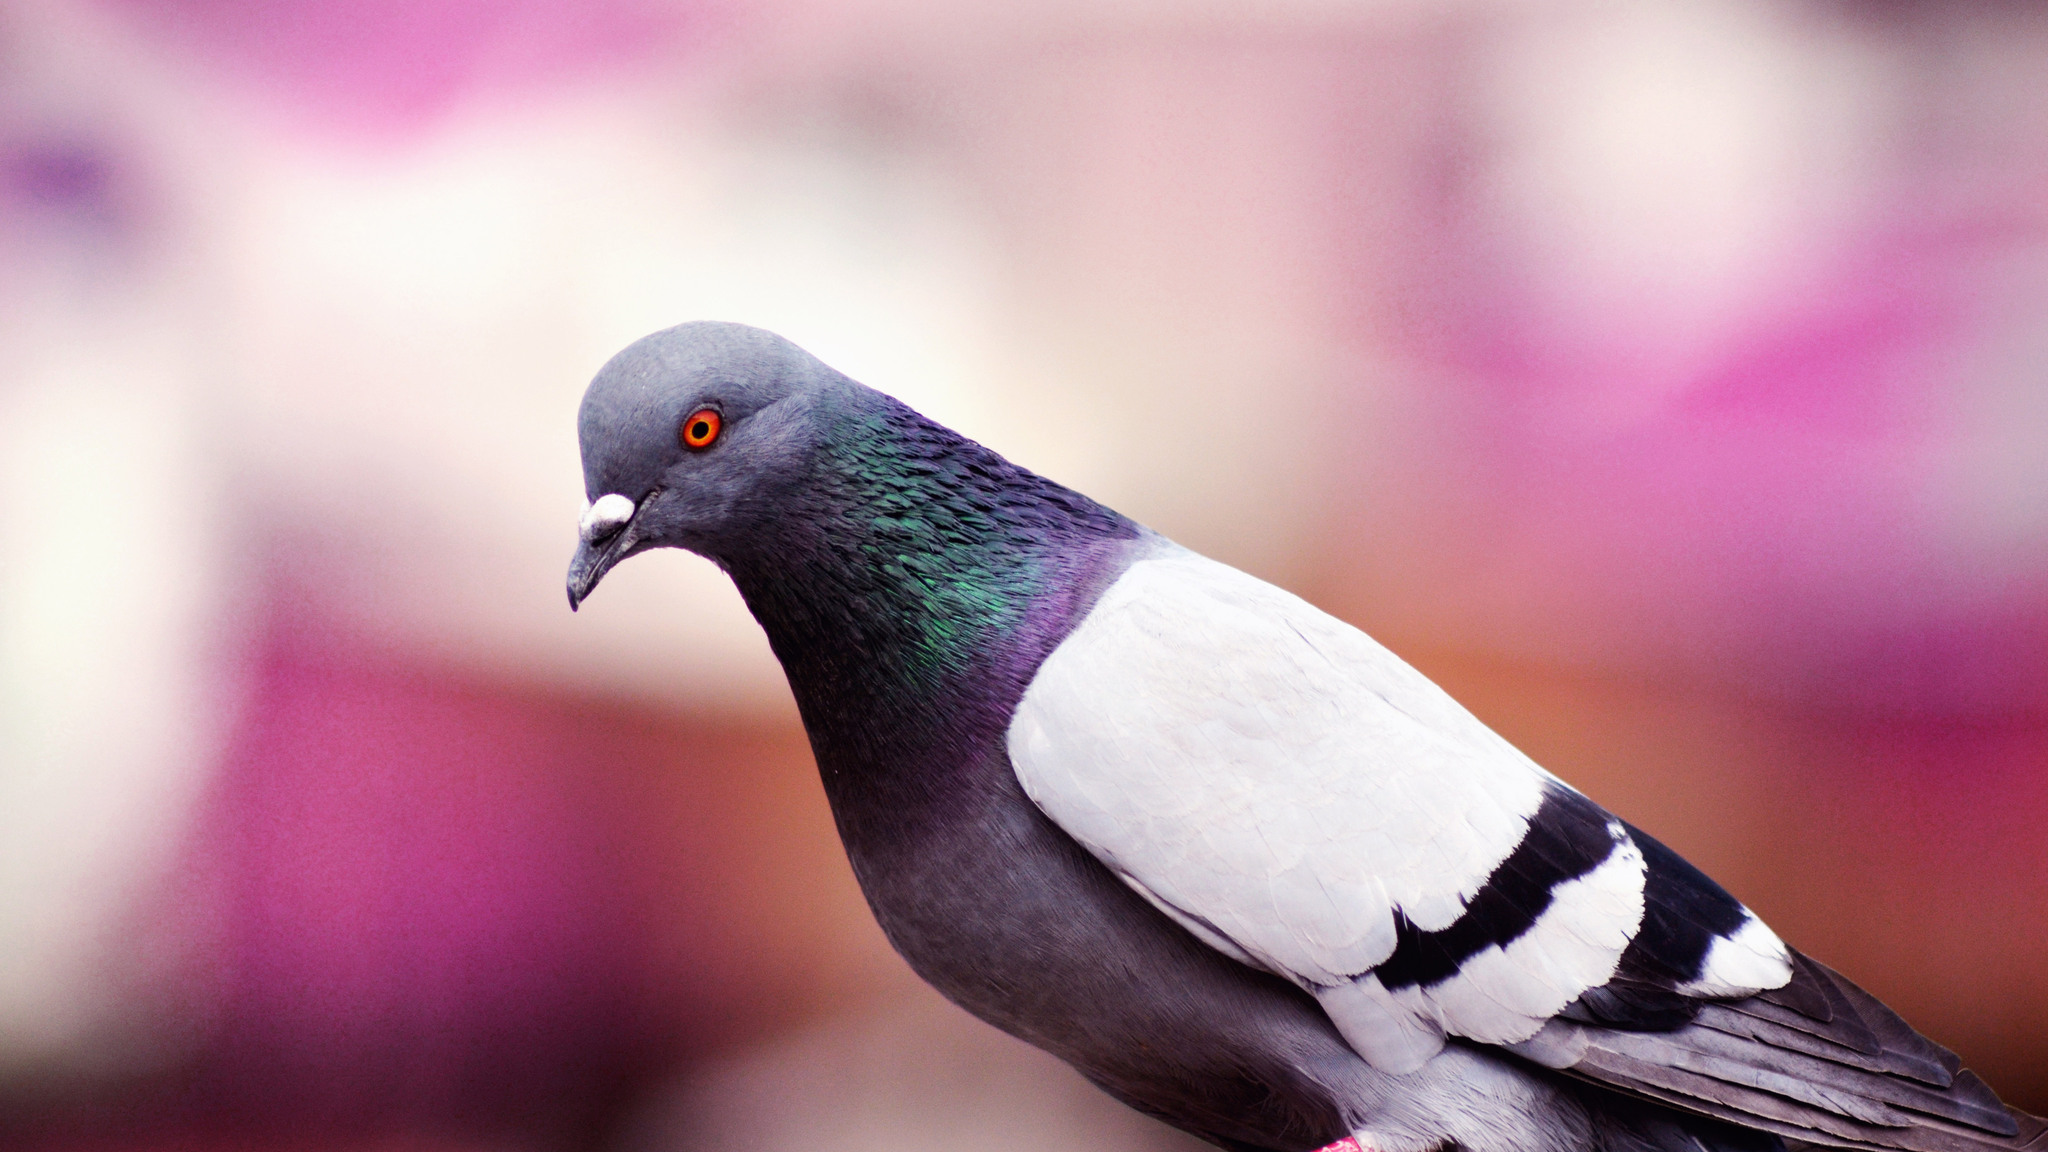 2048x1152 pigeon 2048x1152 resolution hd 4k wallpapers, images